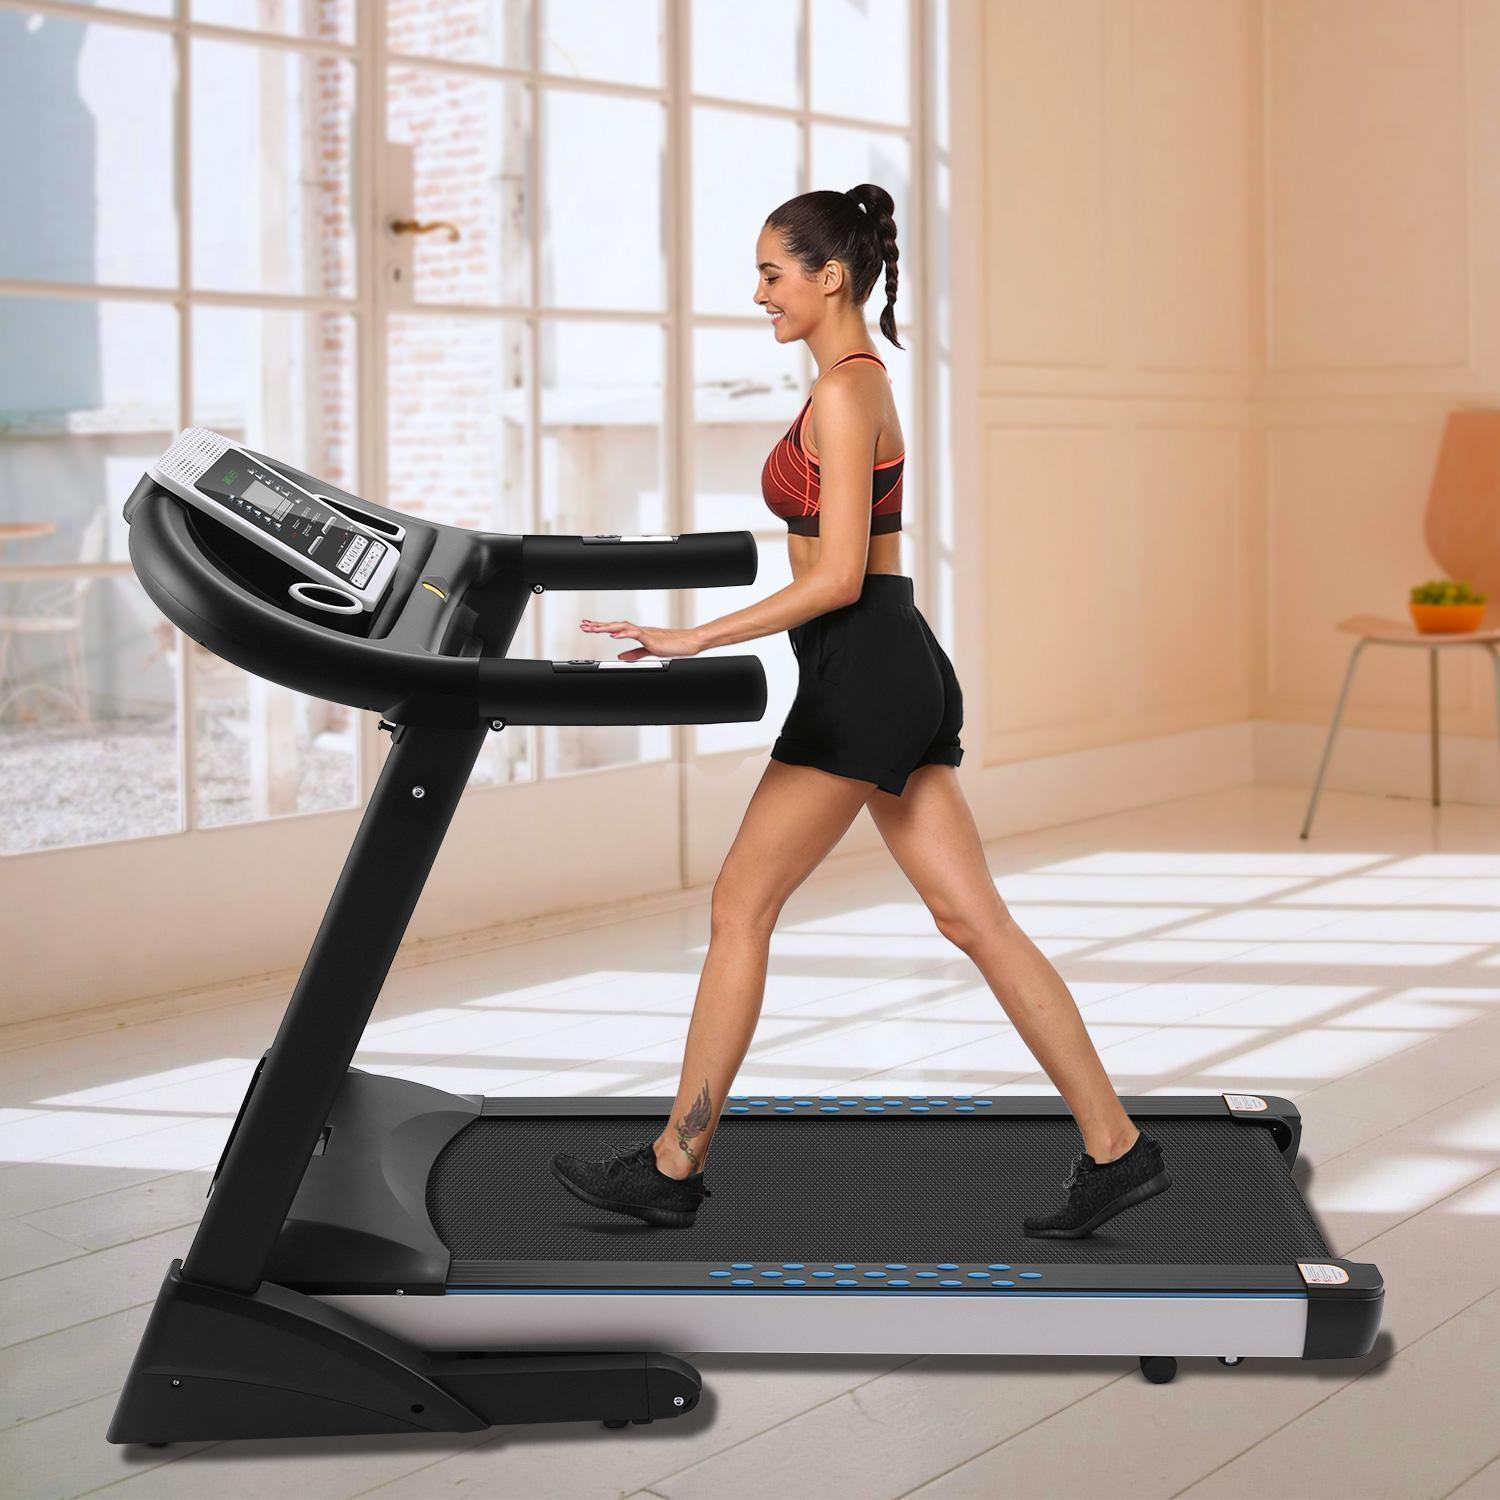 Lowest price ever!Treadmill 3.0HP Fitness Folding Electric Treadmill Exercise Equipment Walking Running Machine Gym Home